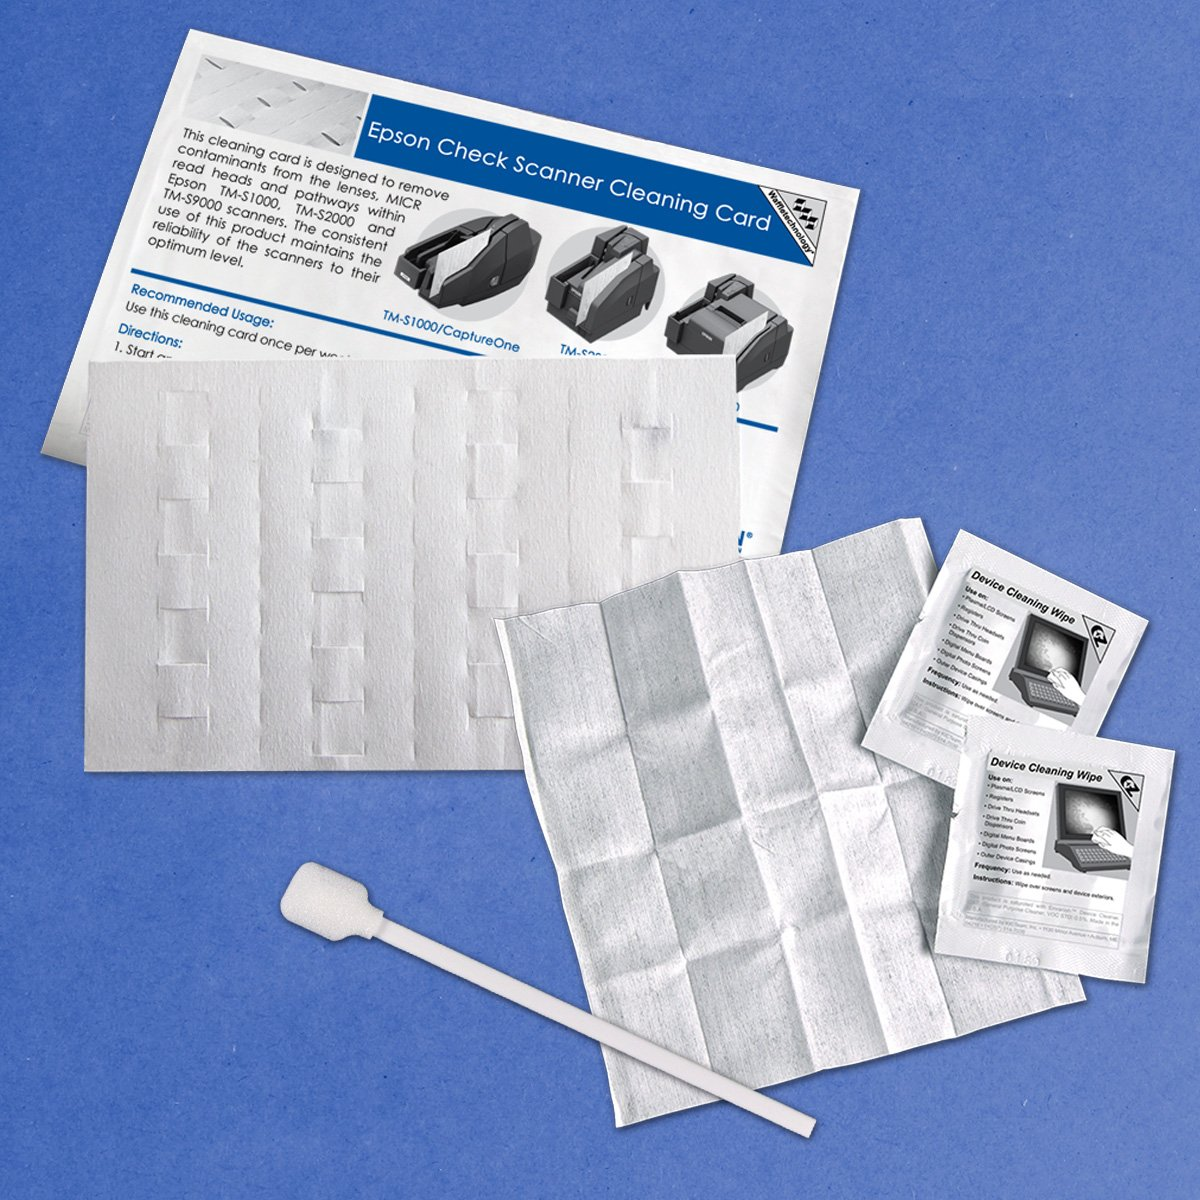 Epson CaptureOne Cleaning Kit